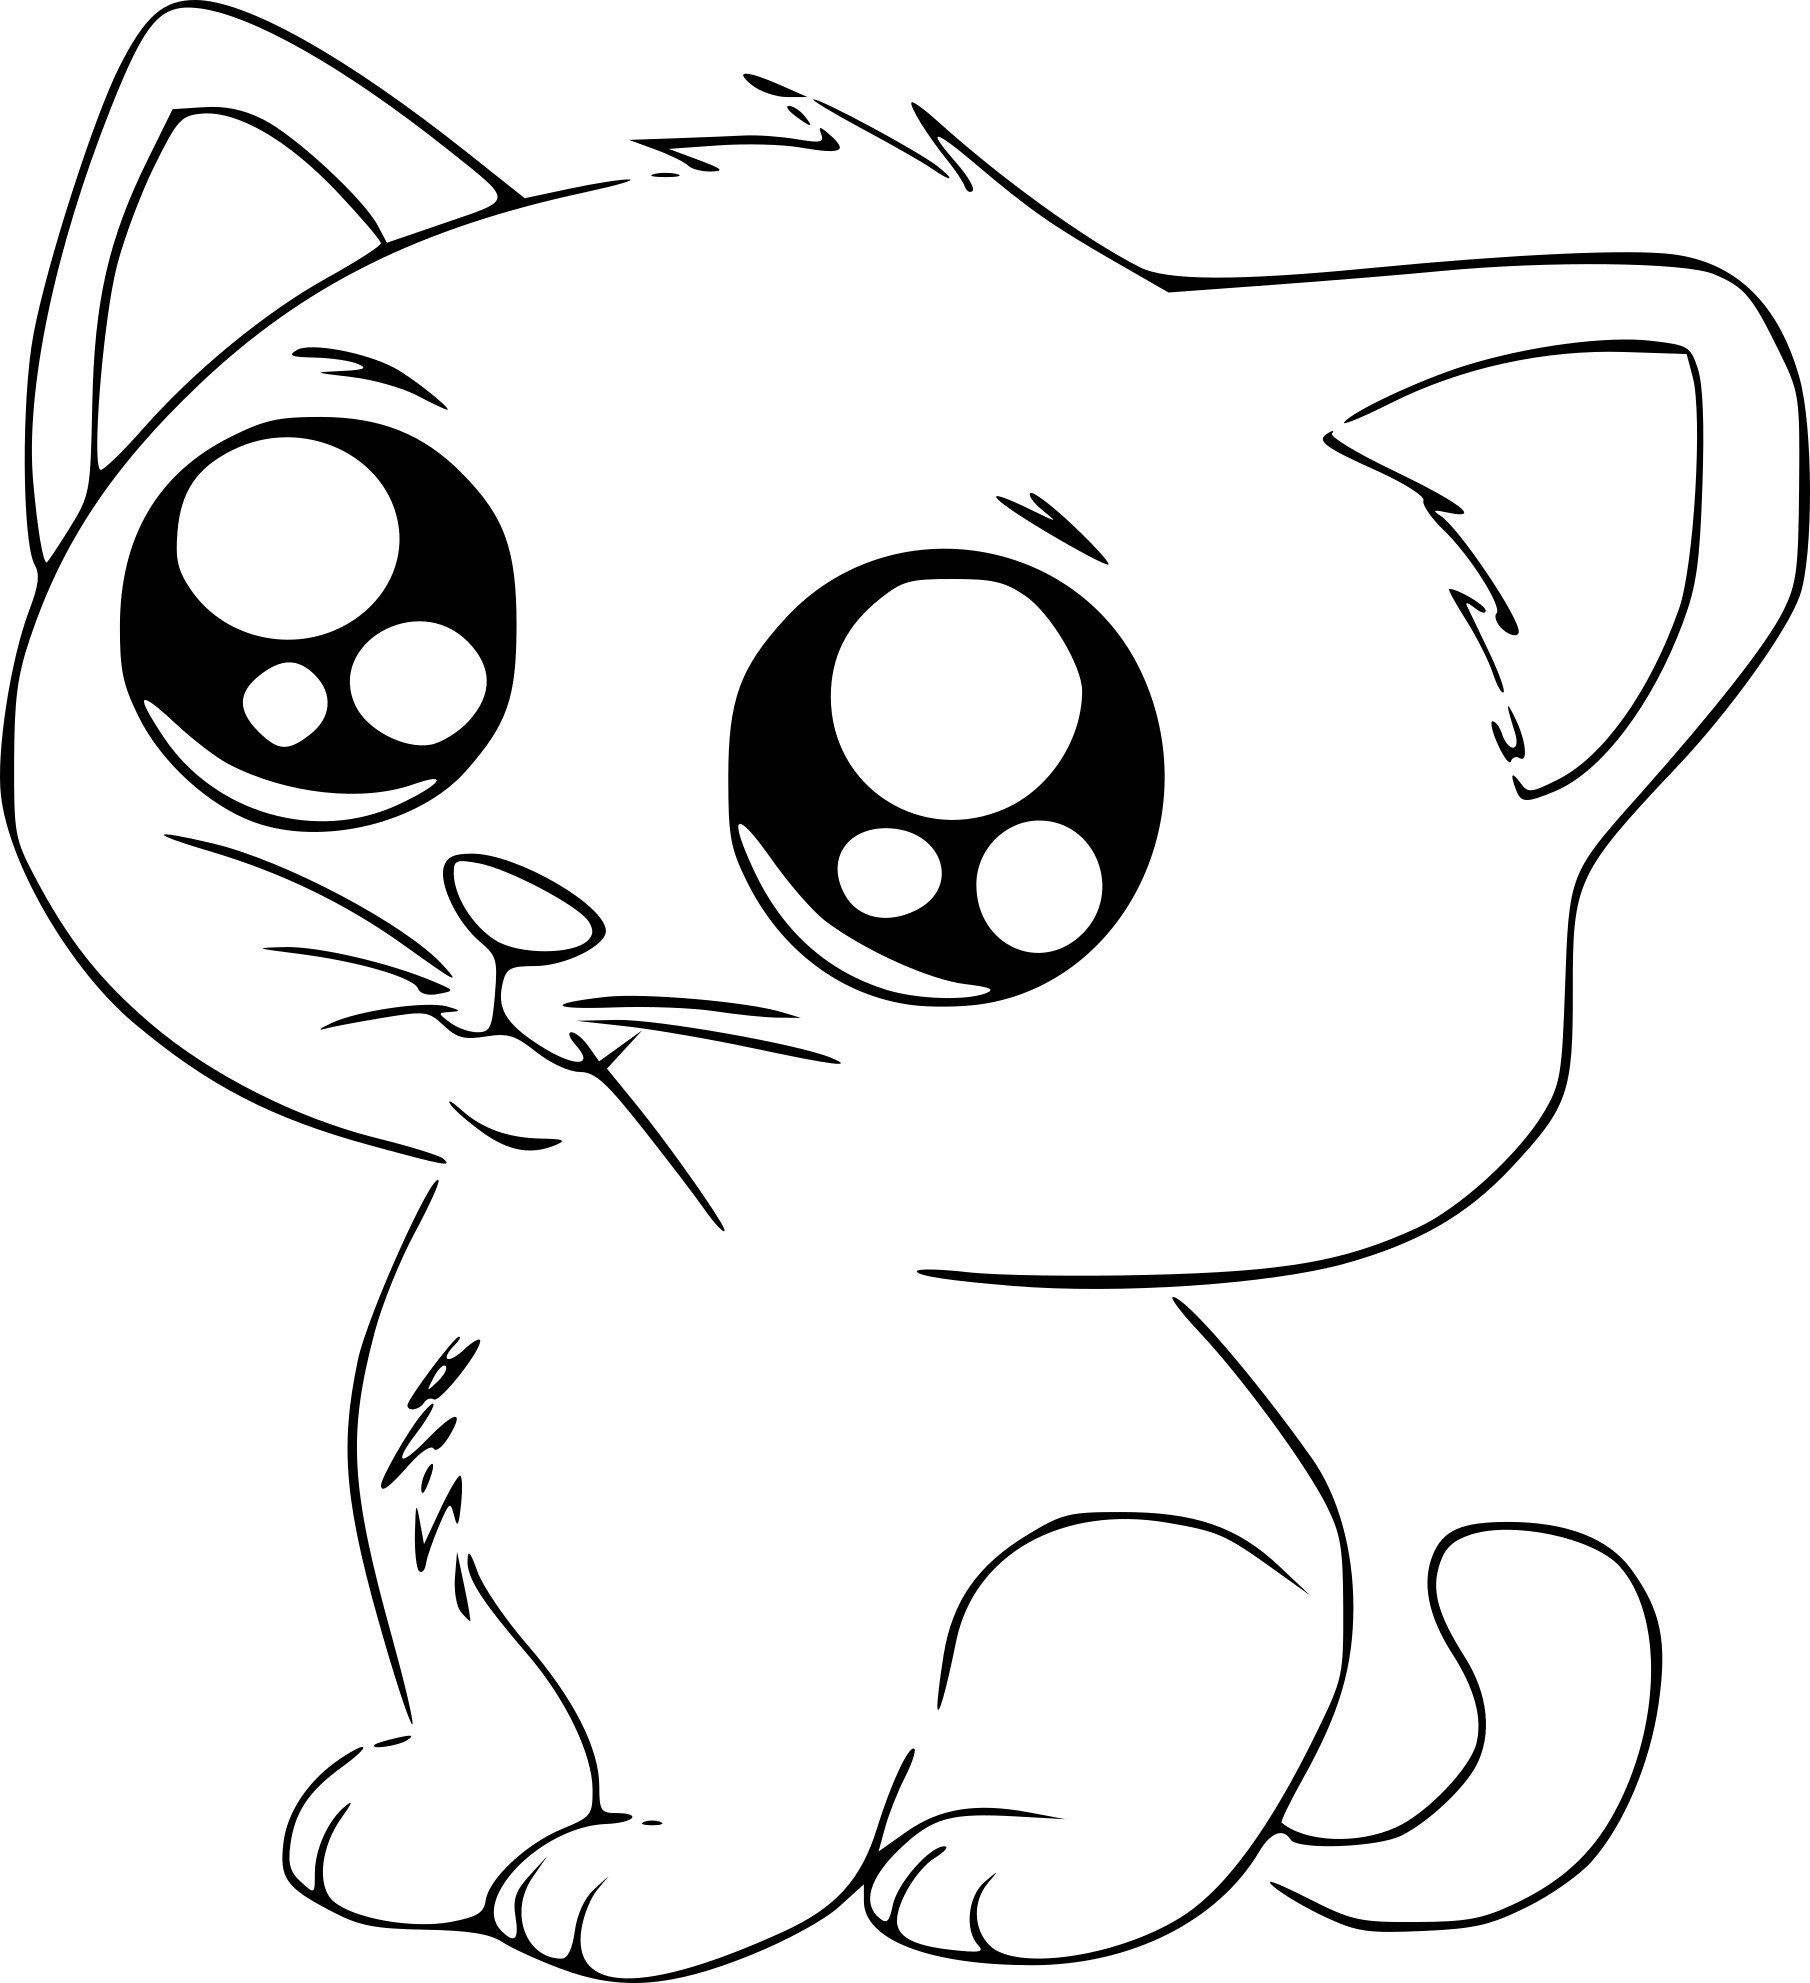 Coloriage chat manga imprimer - Dessin a colorier un chat ...